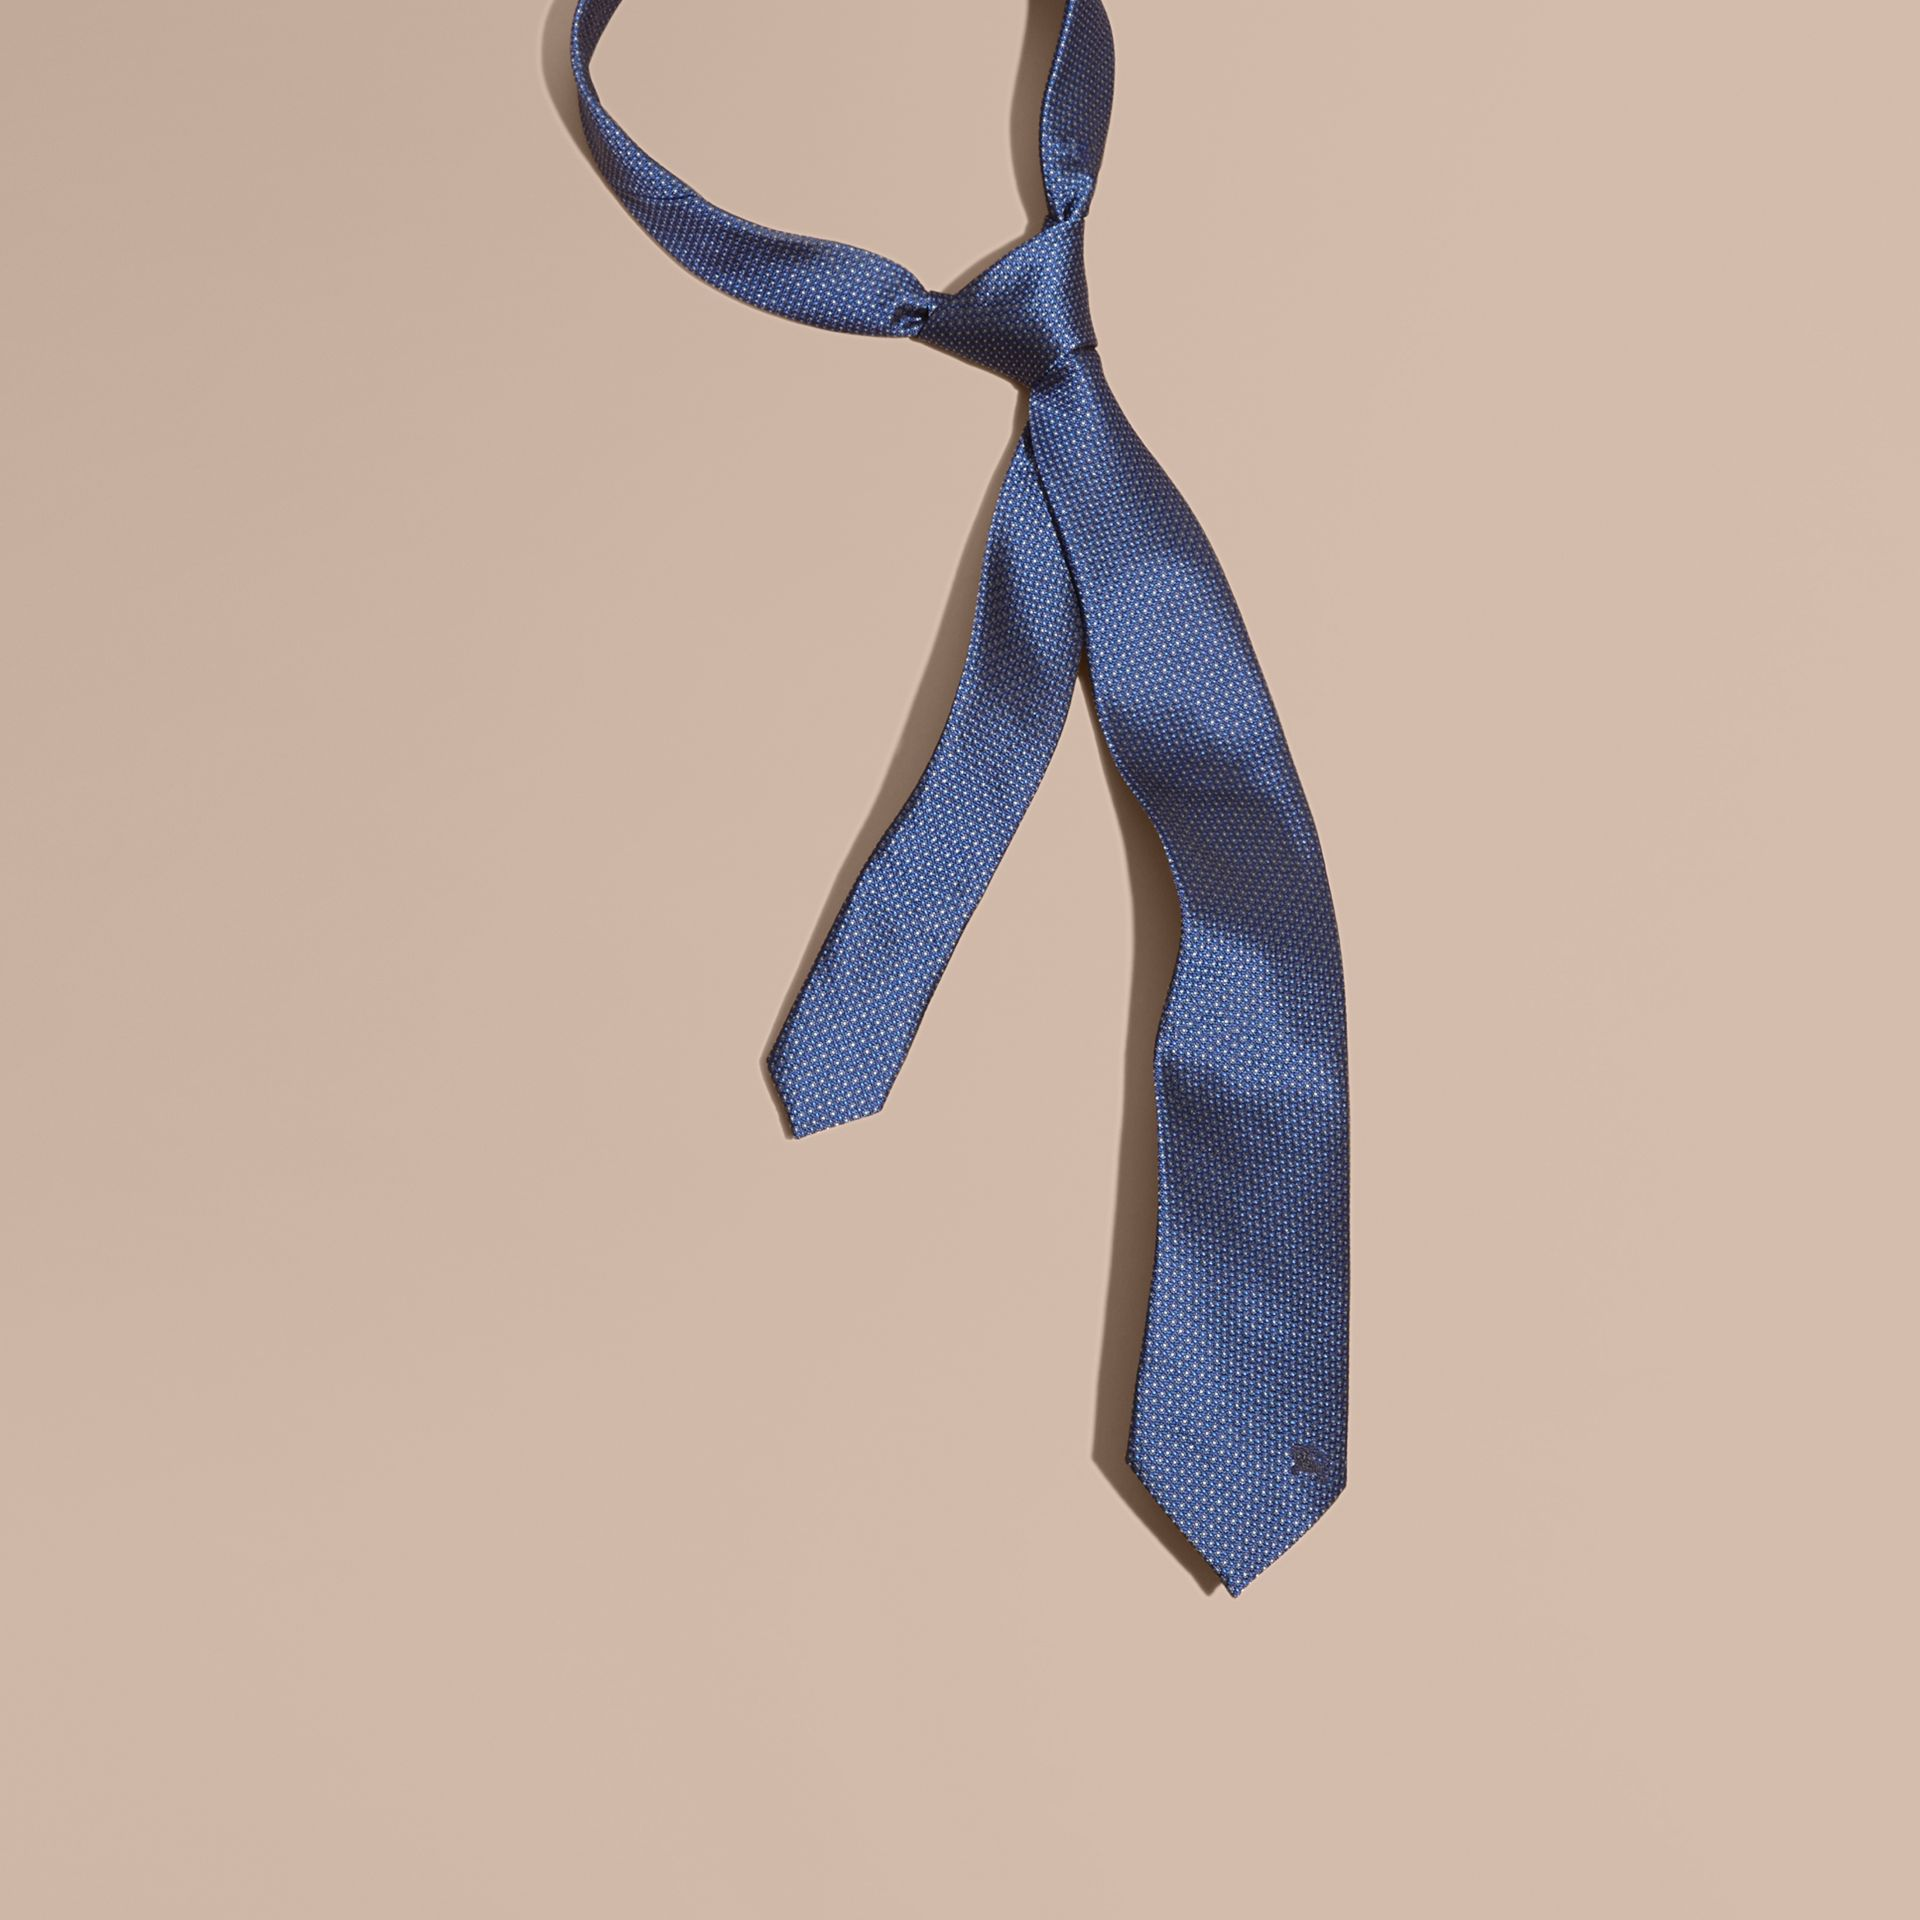 Brilliant blue Modern Cut Patterned Silk Tie Brilliant Blue - gallery image 1